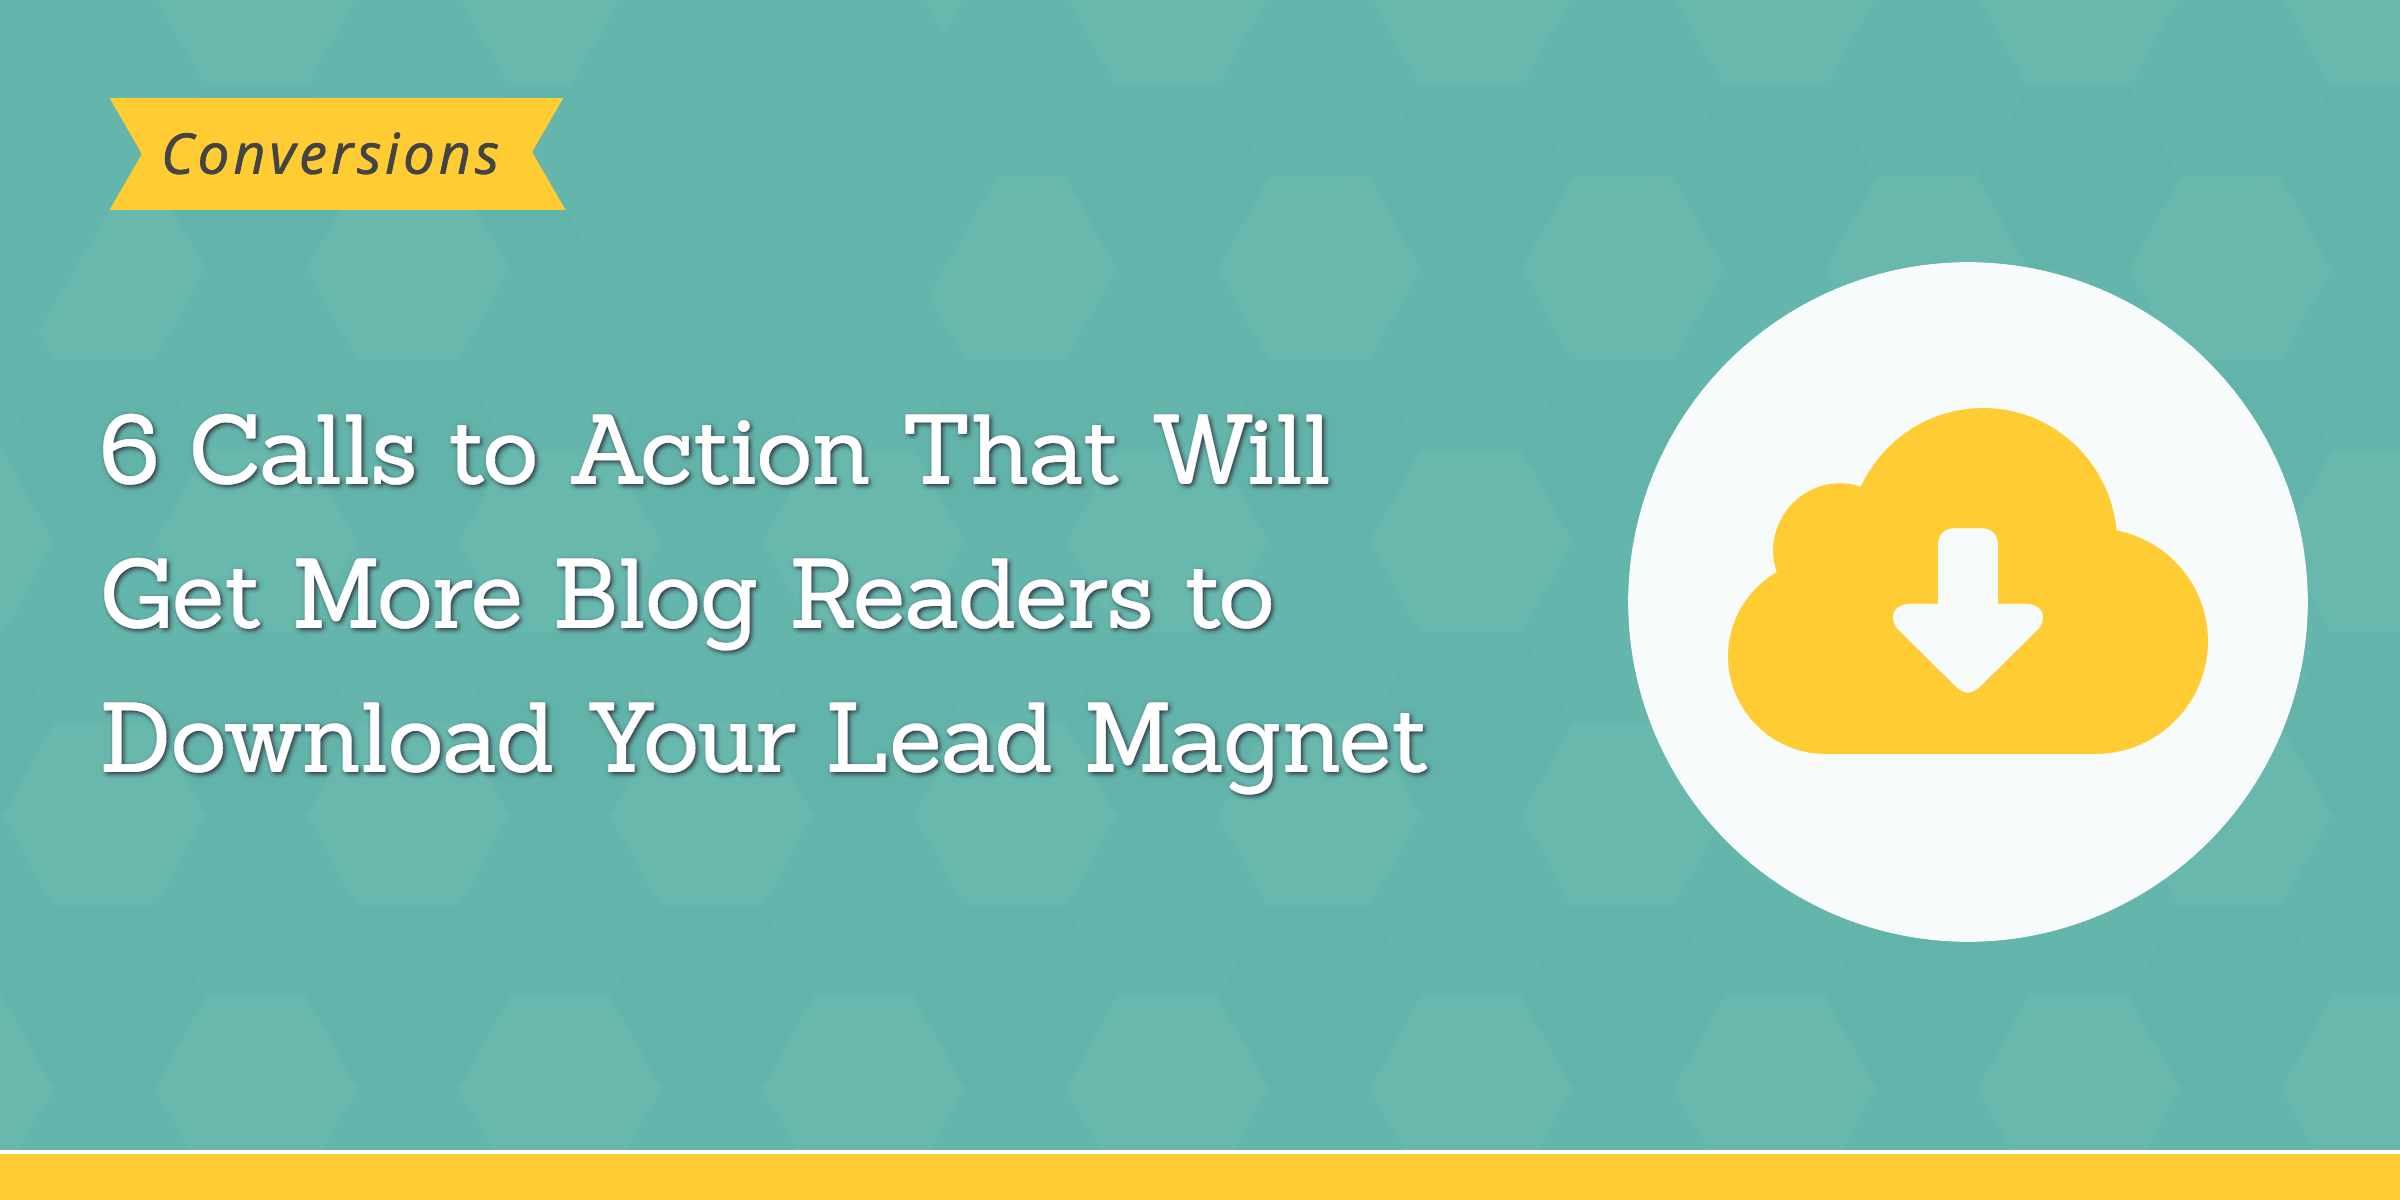 calls to action to download a lead magnet